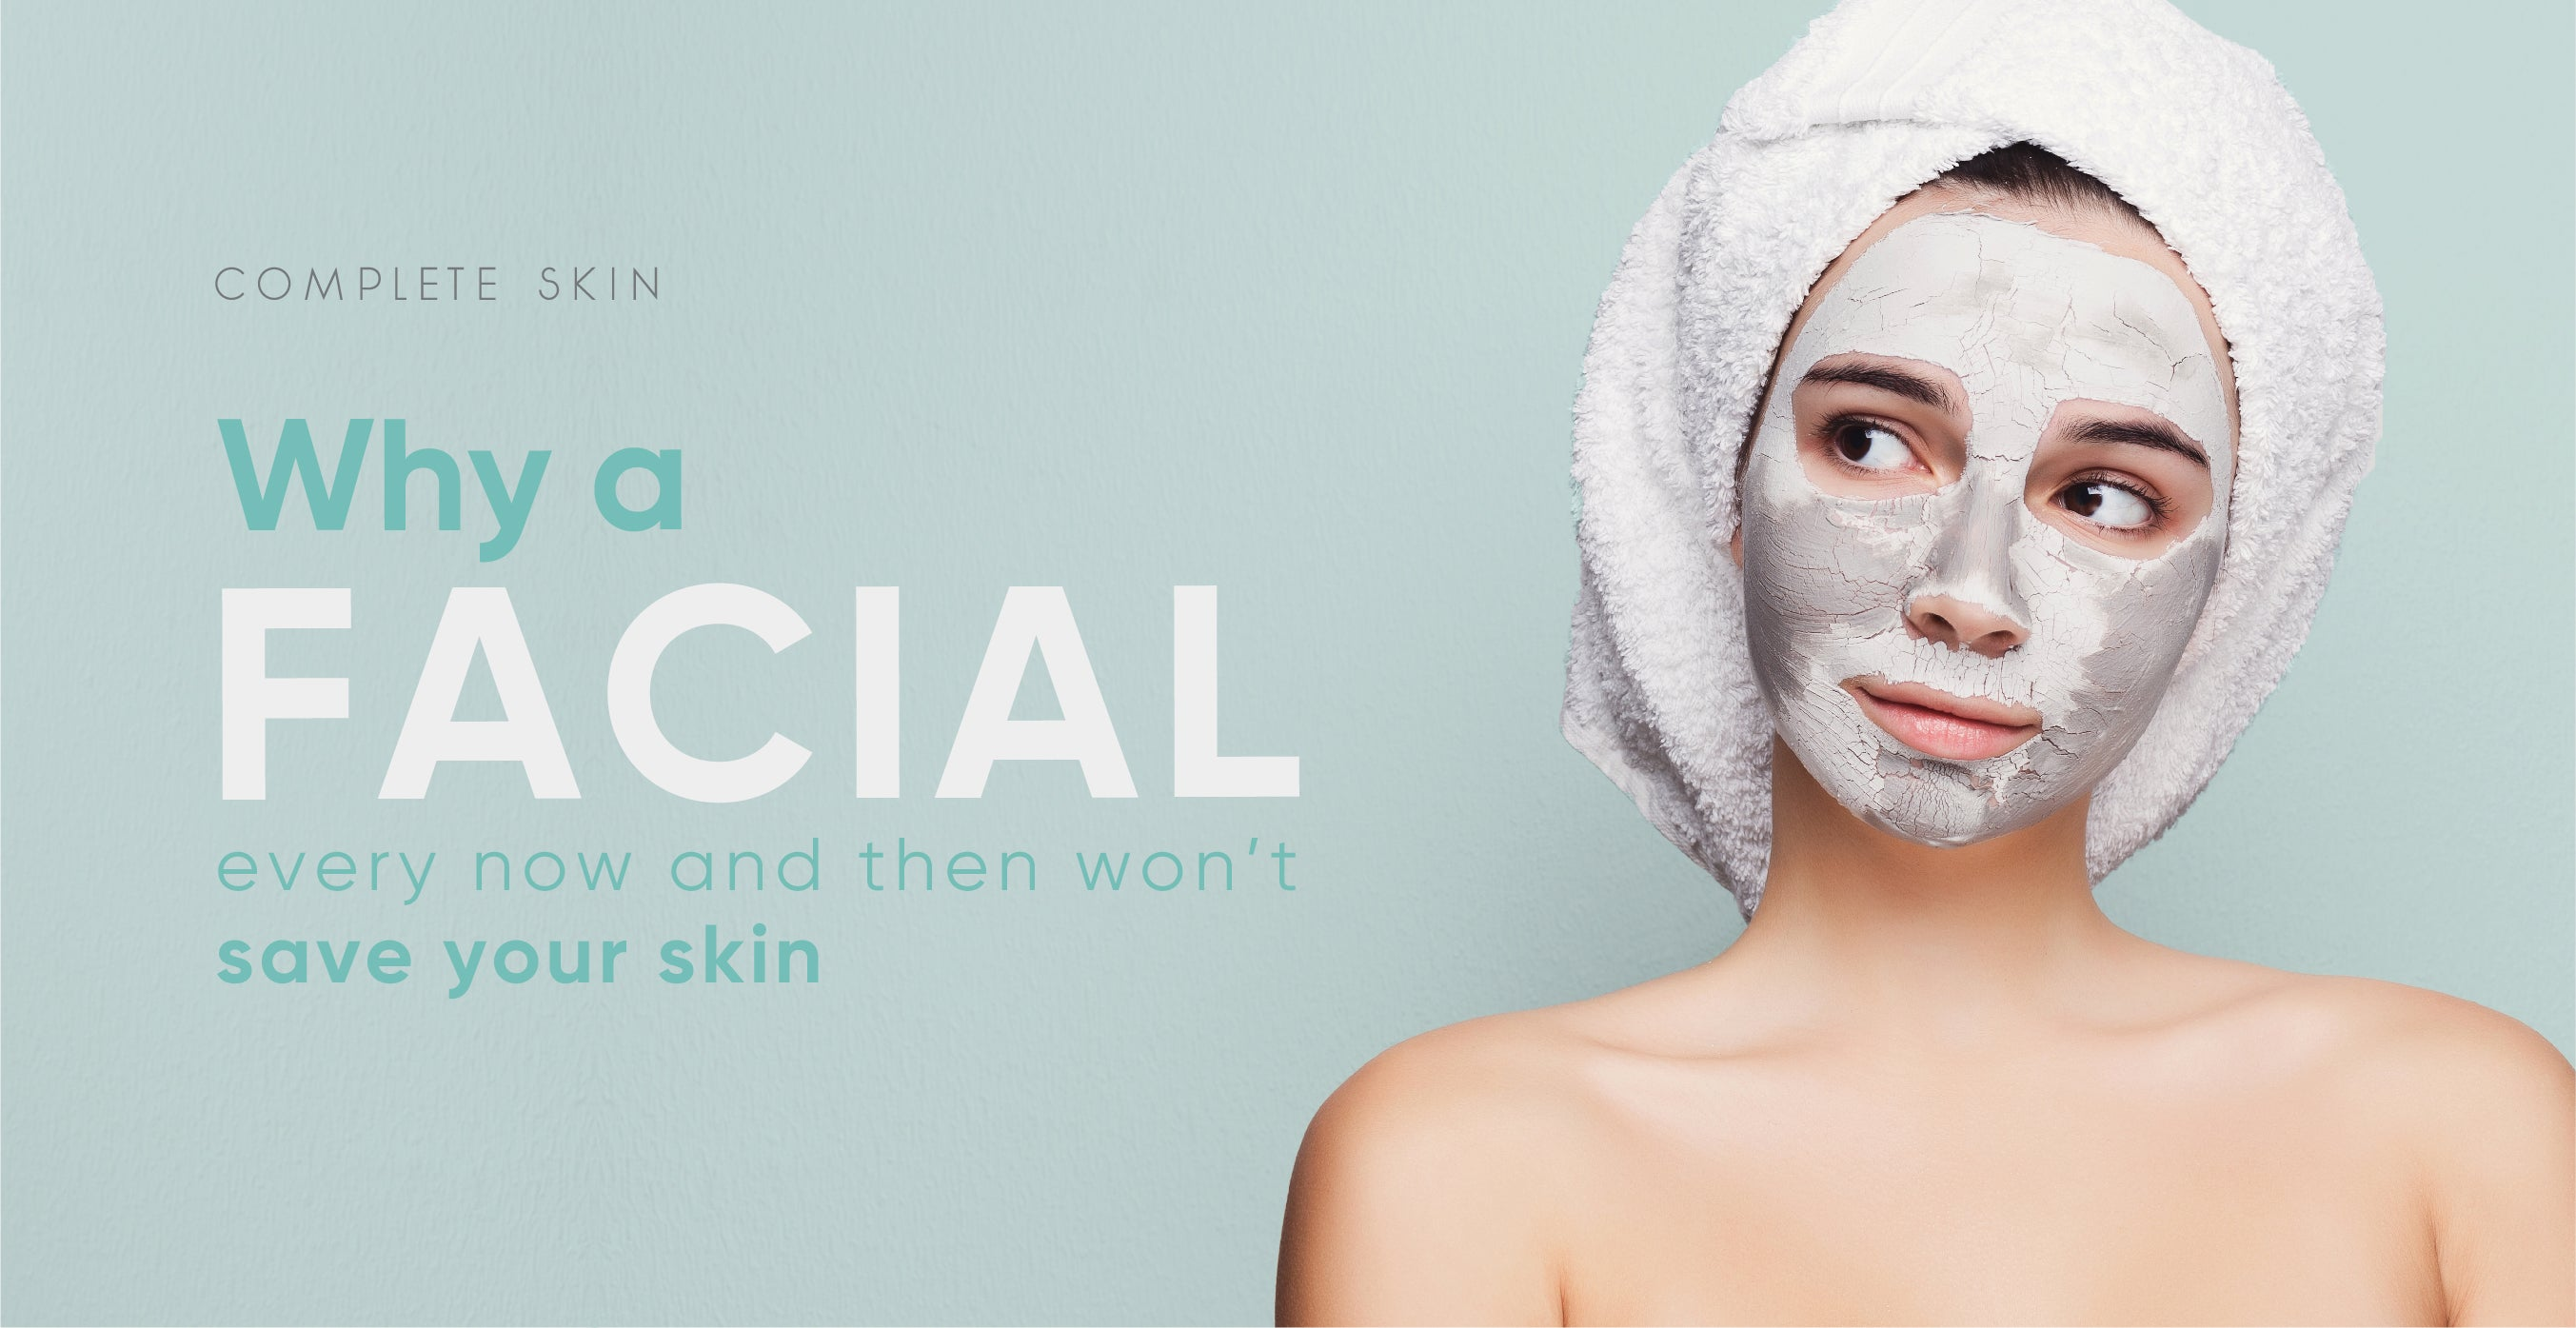 Why a facial every now and then won't save your skin...